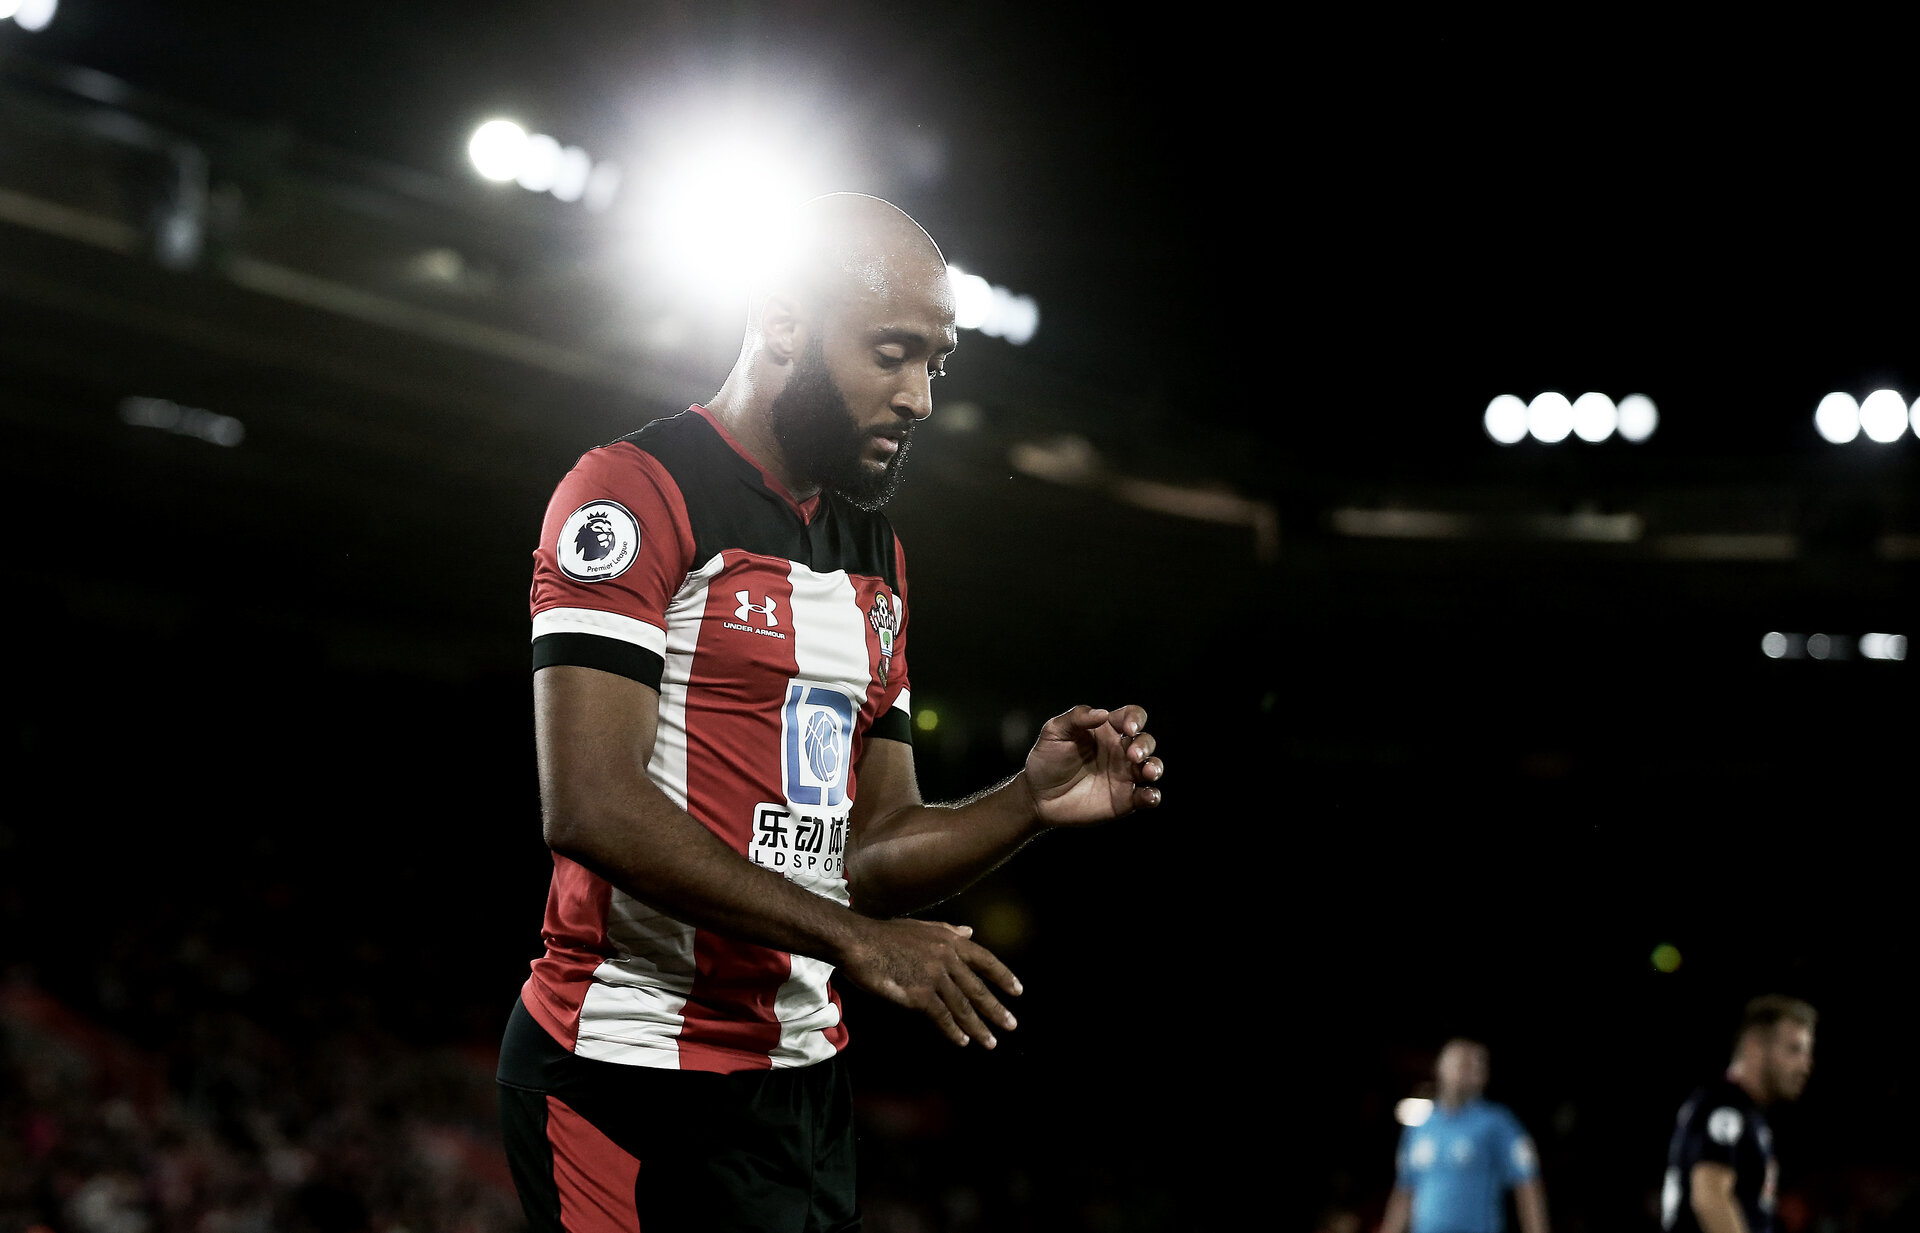 SOUTHAMPTON, ENGLAND - SEPTEMBER 20: Nathan Redmond of Southampton during the Premier League match between Southampton FC and AFC Bournemouth  at St Mary's Stadium on September 20, 2019 in Southampton, United Kingdom. (Photo by Matt Watson/Southampton FC via Getty Images)